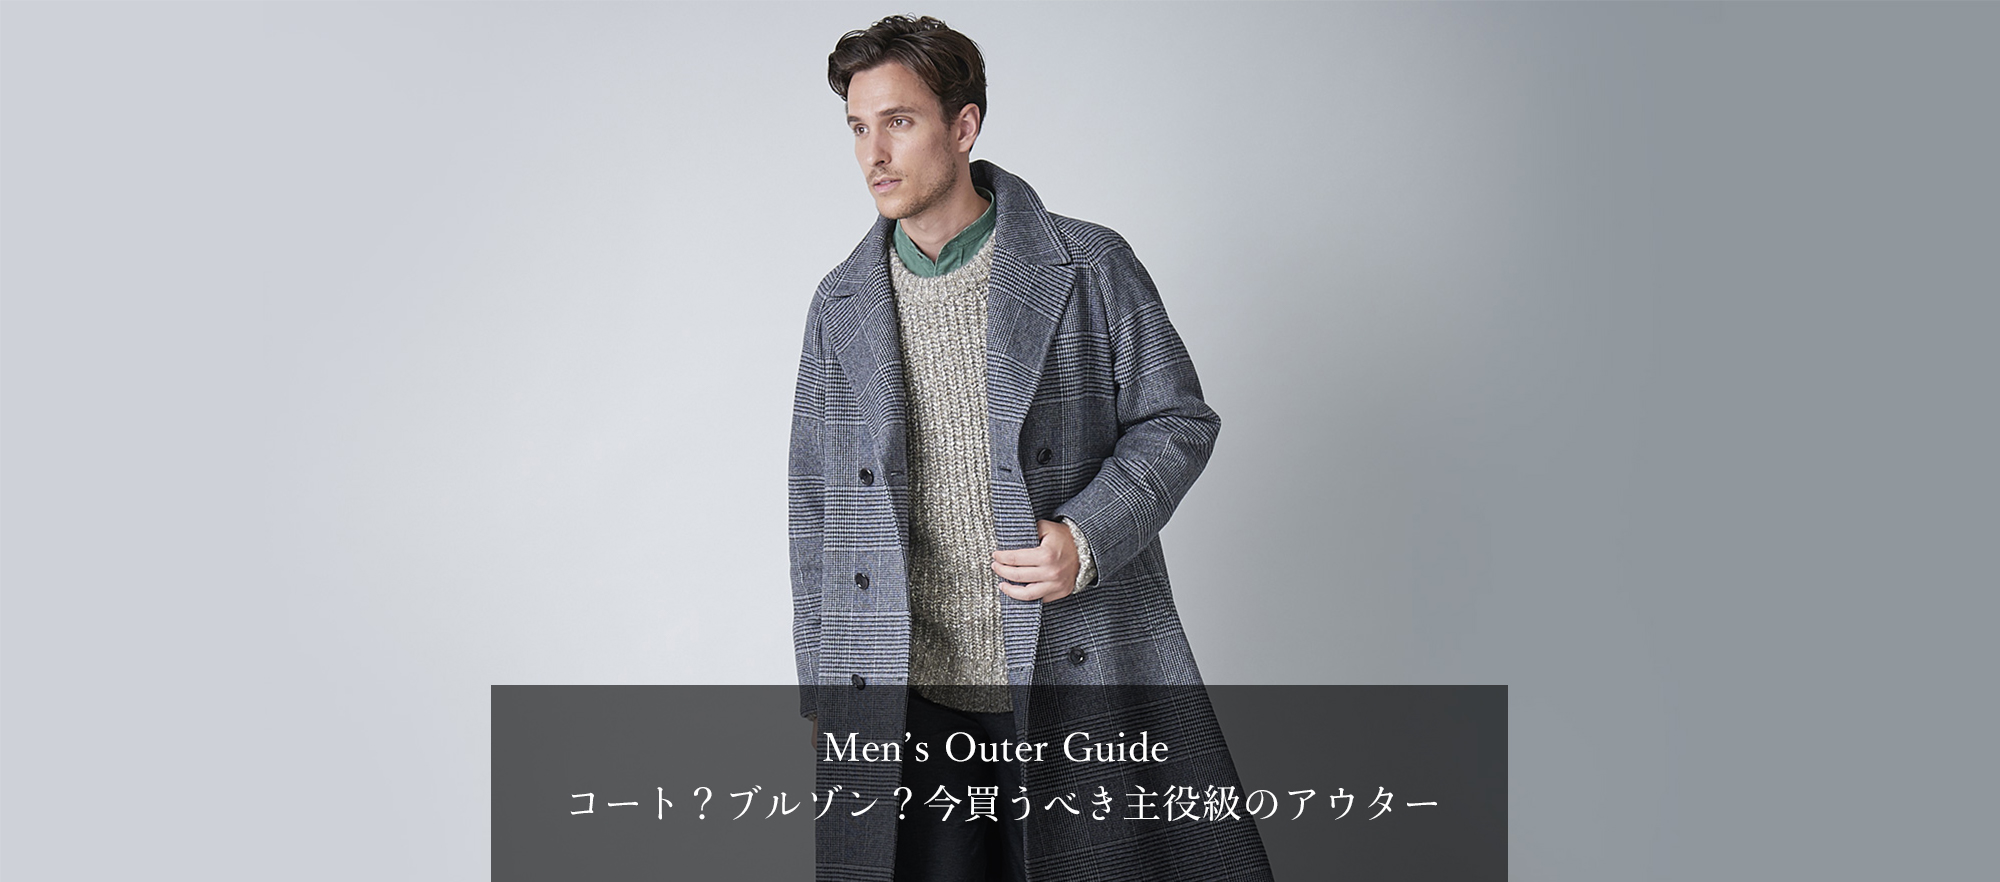 Men's Outer Guide